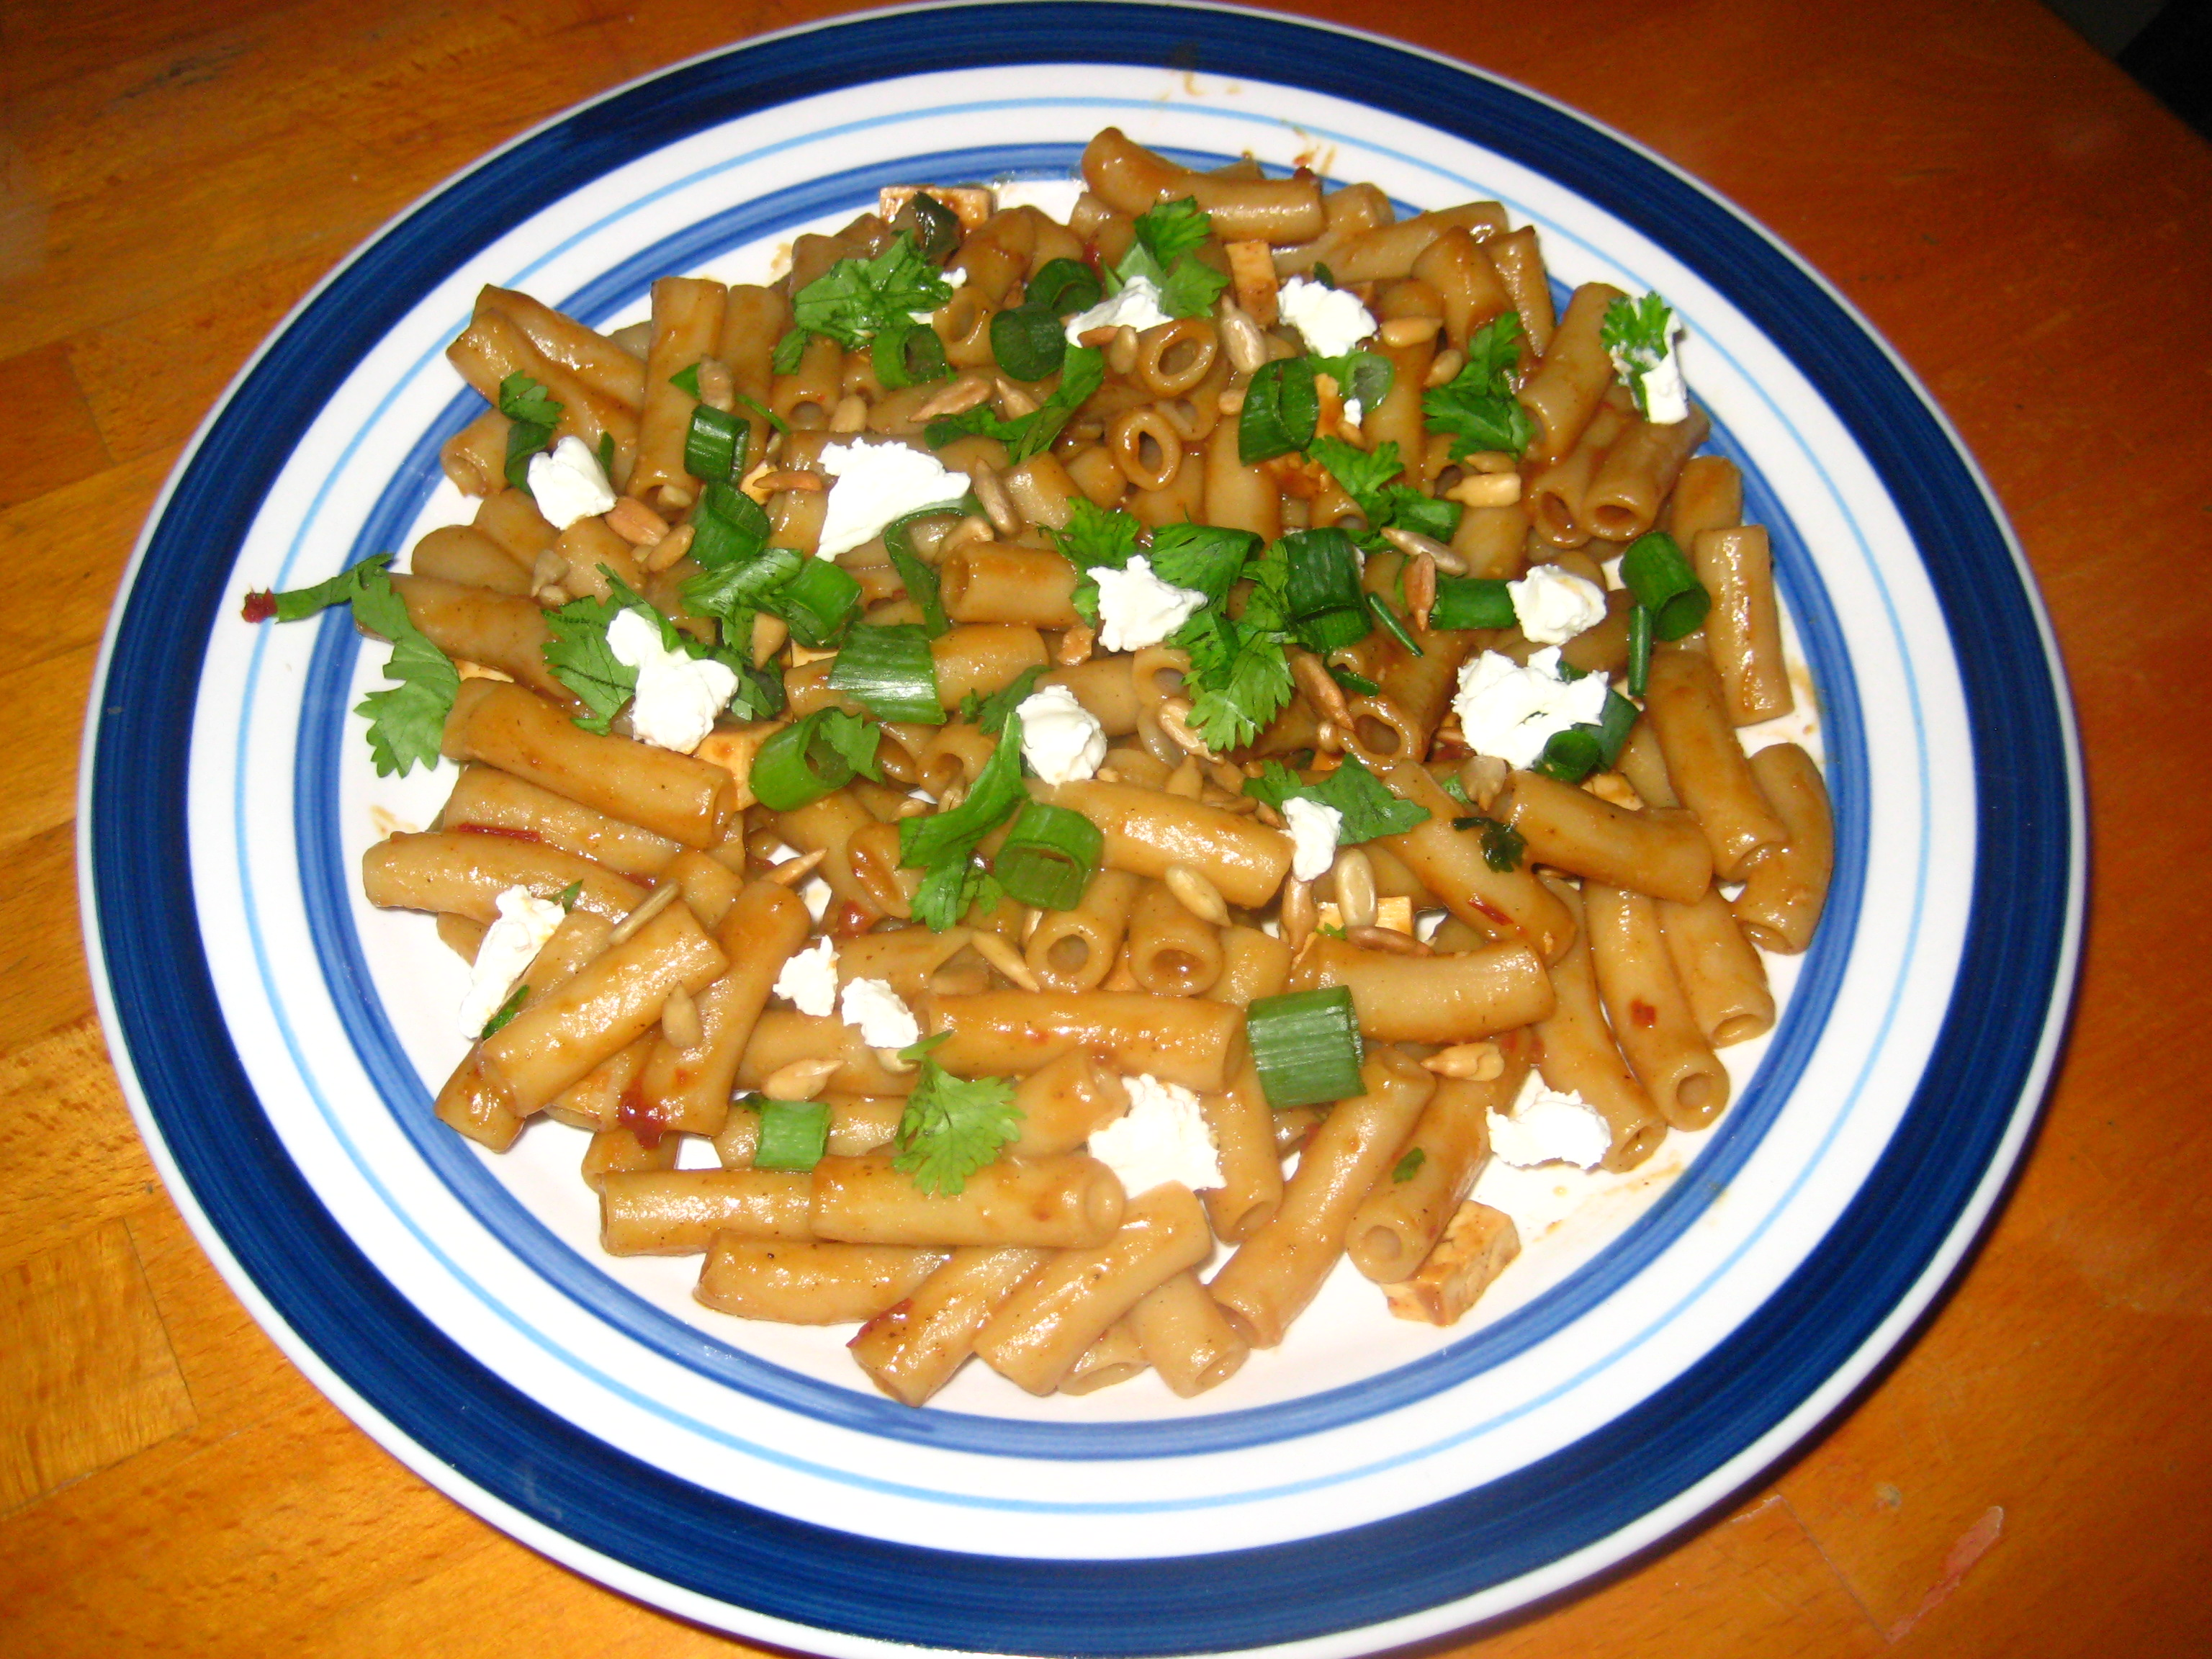 Southewestern Pasta with Chipotle Lime sauce, Goat Cheese and Fresh Cilantro